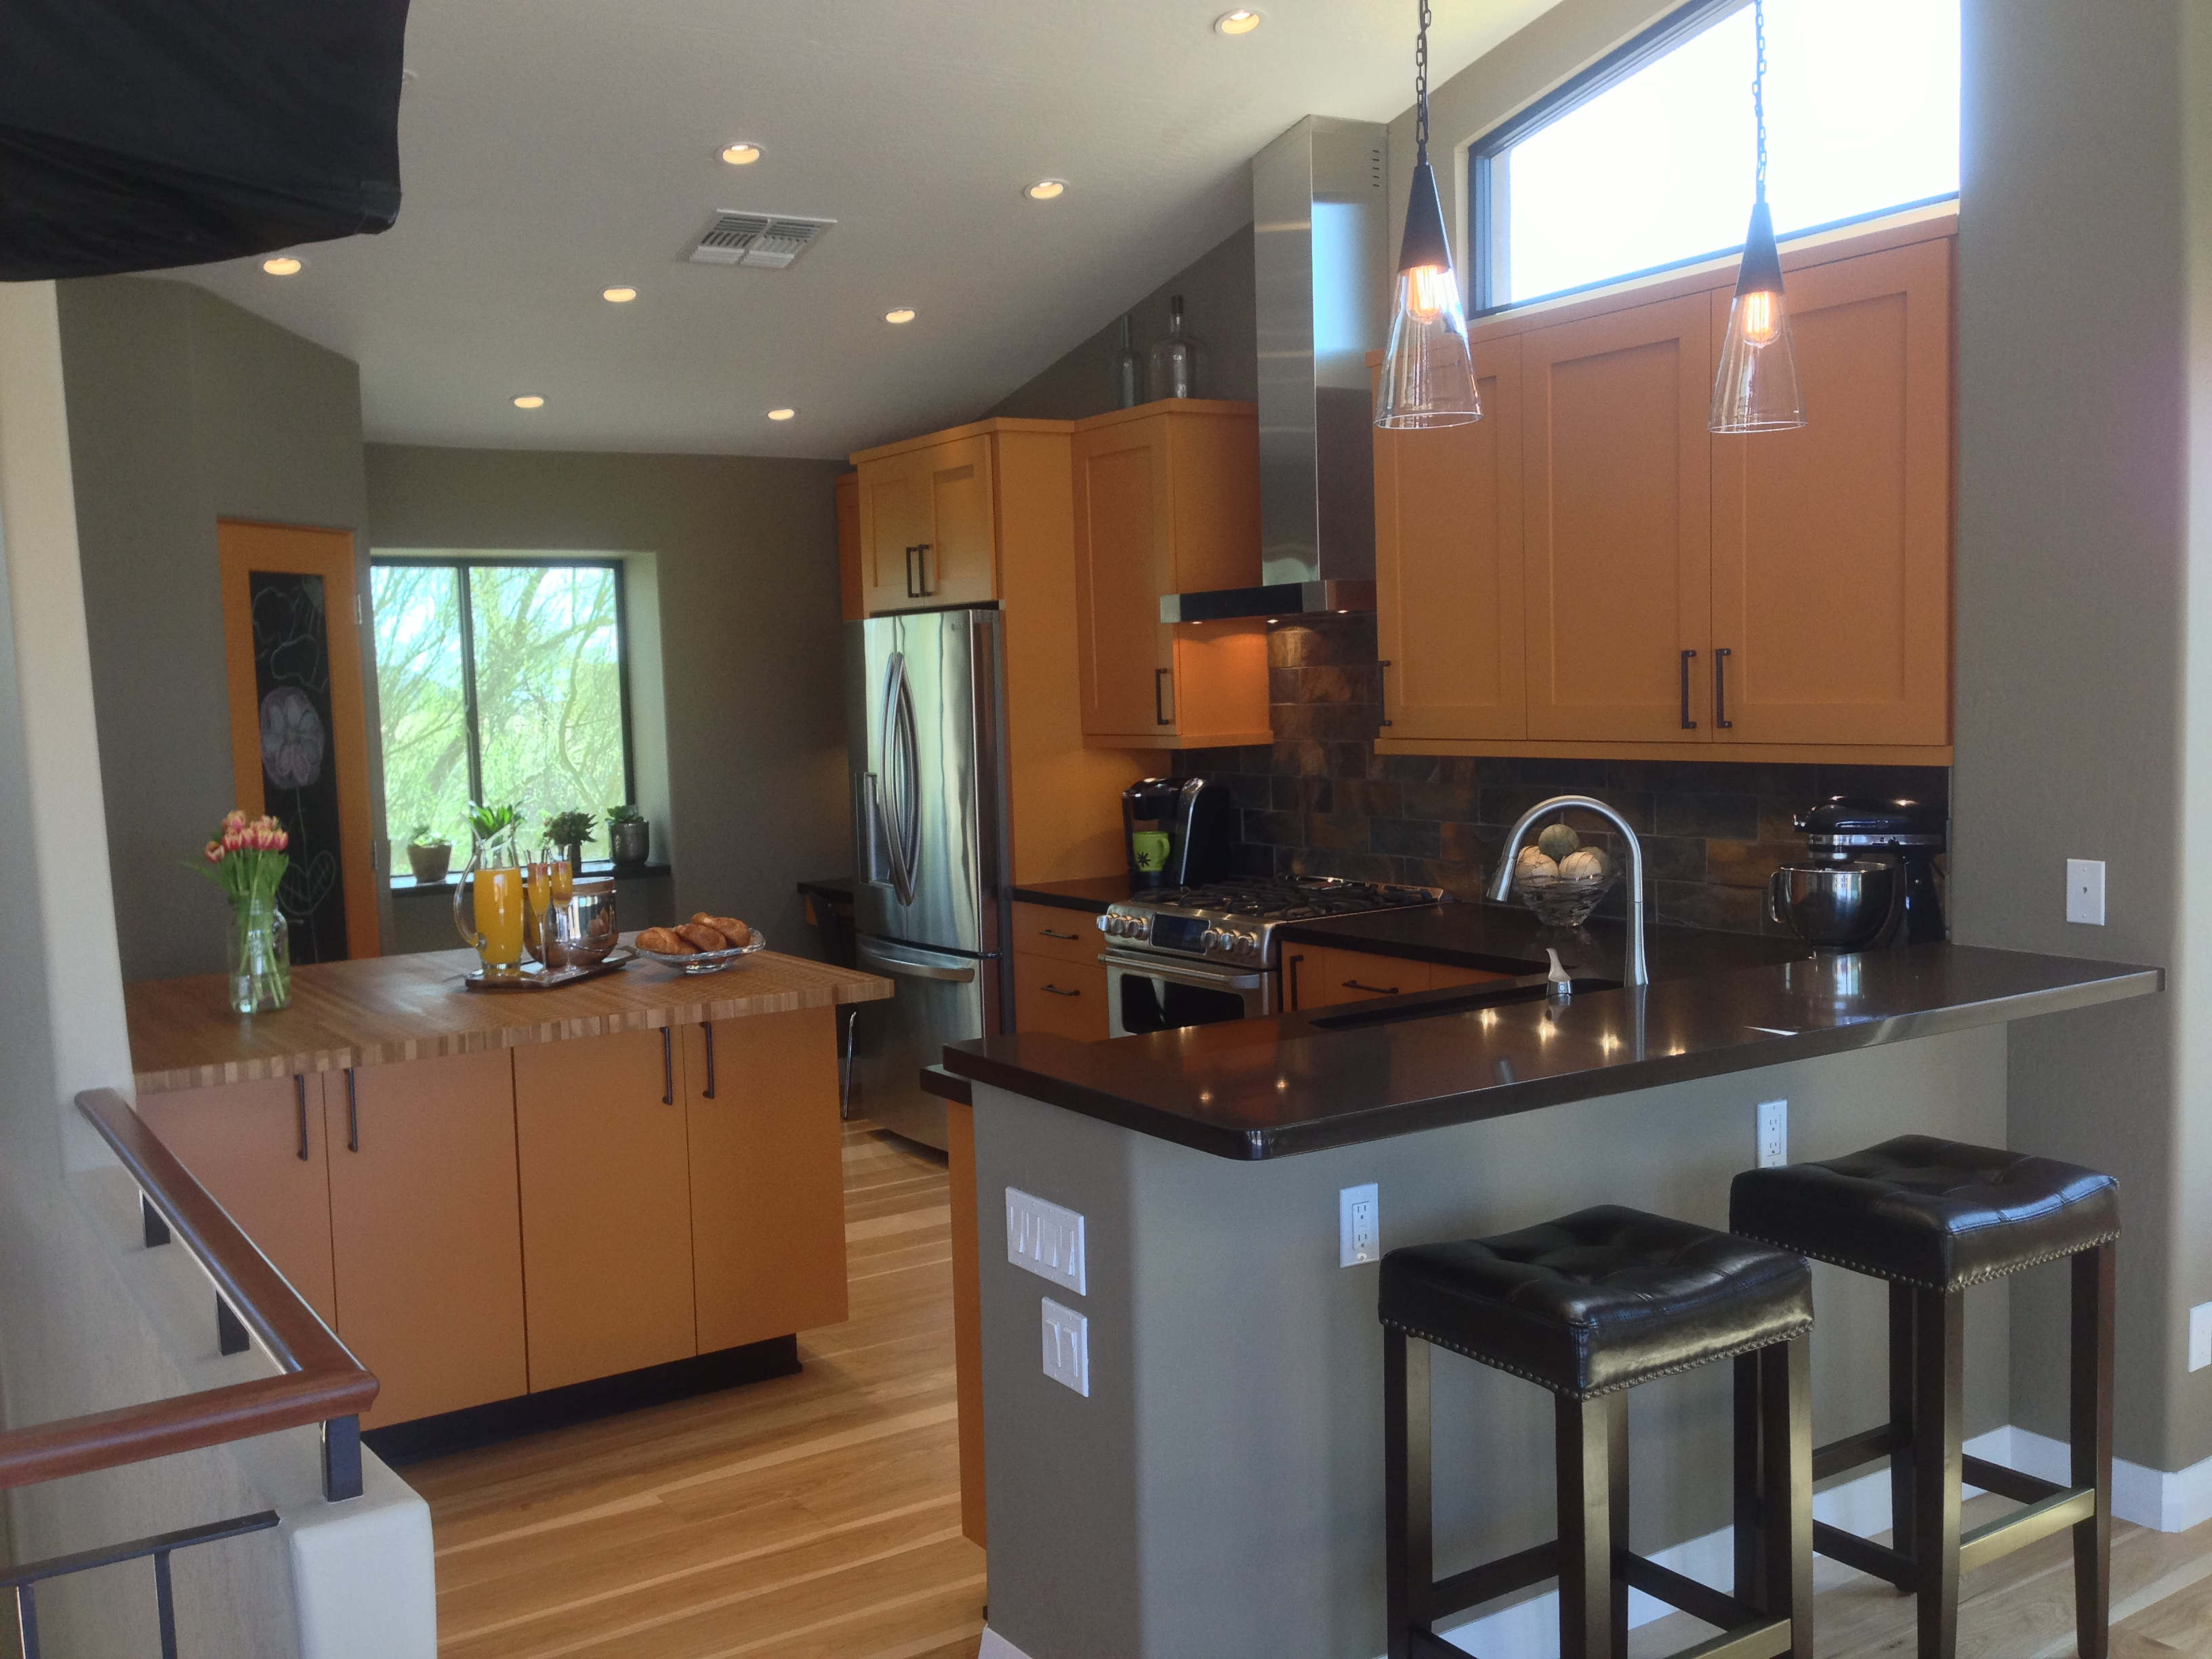 black kitchen countertops appliances pittsburgh custom home building remodeling and restoration june 2015